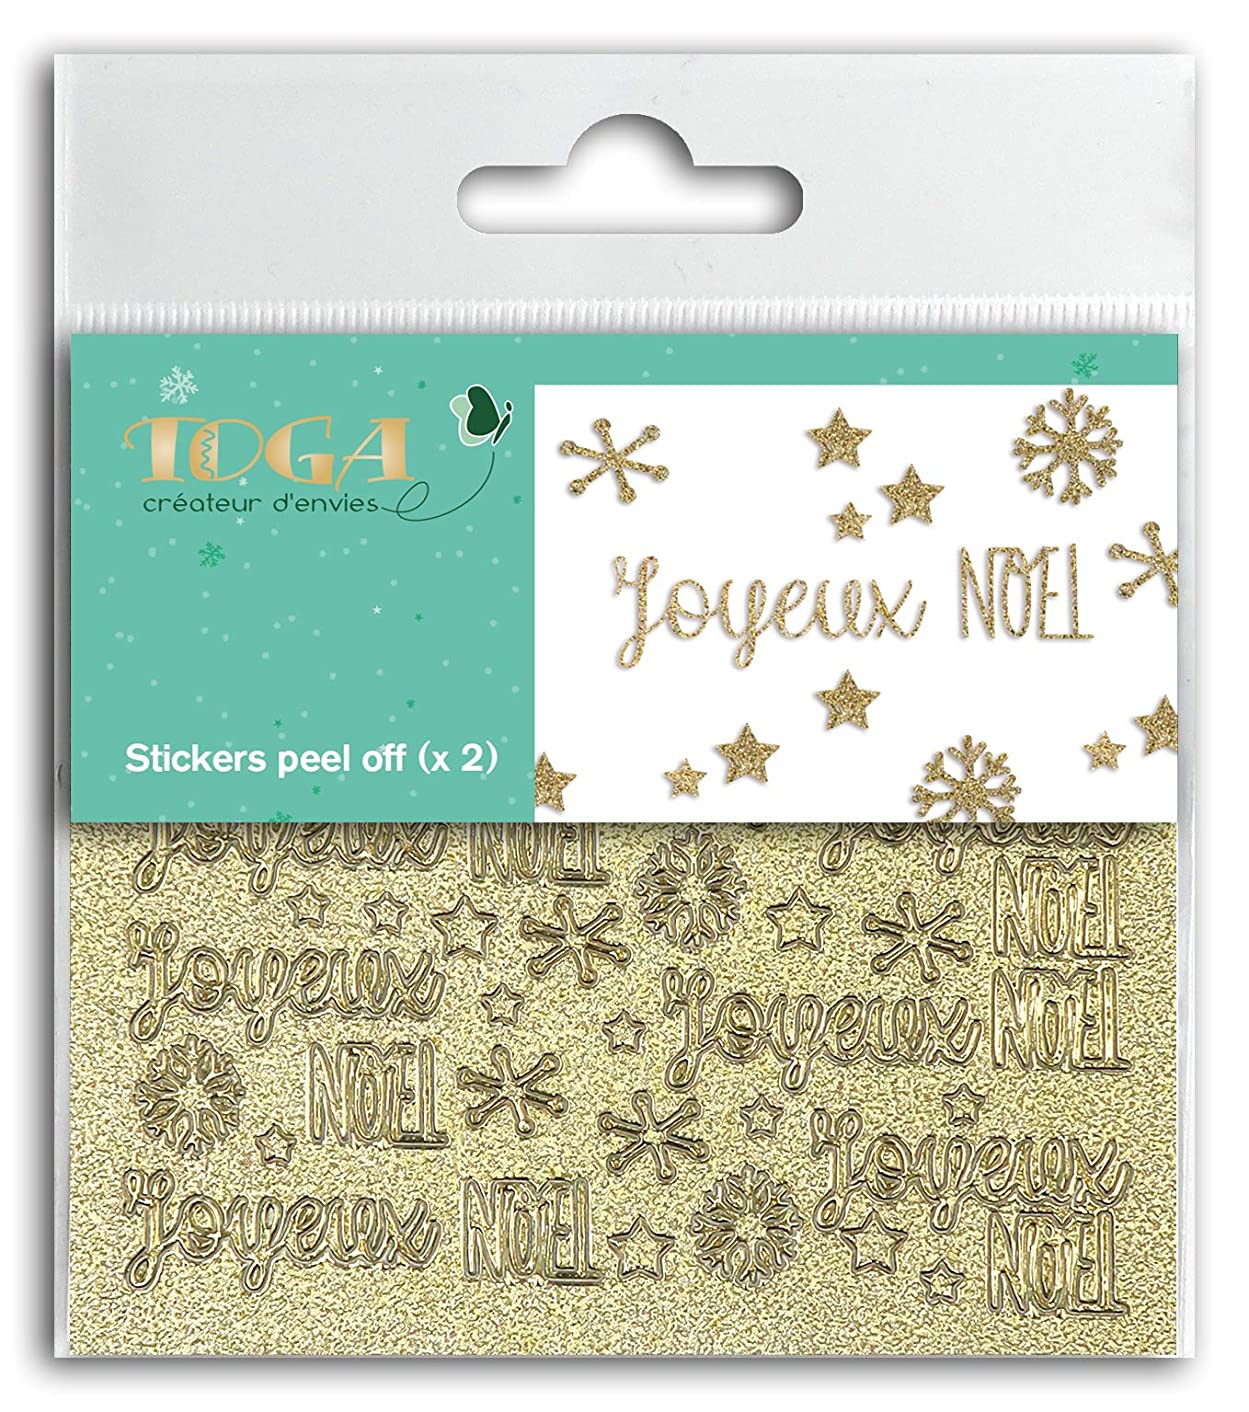 Toga Merry Christmas Set of 2 Peel Off Stickers, Plastic, Gold Glitter, Board Size: 10 x 10 cm